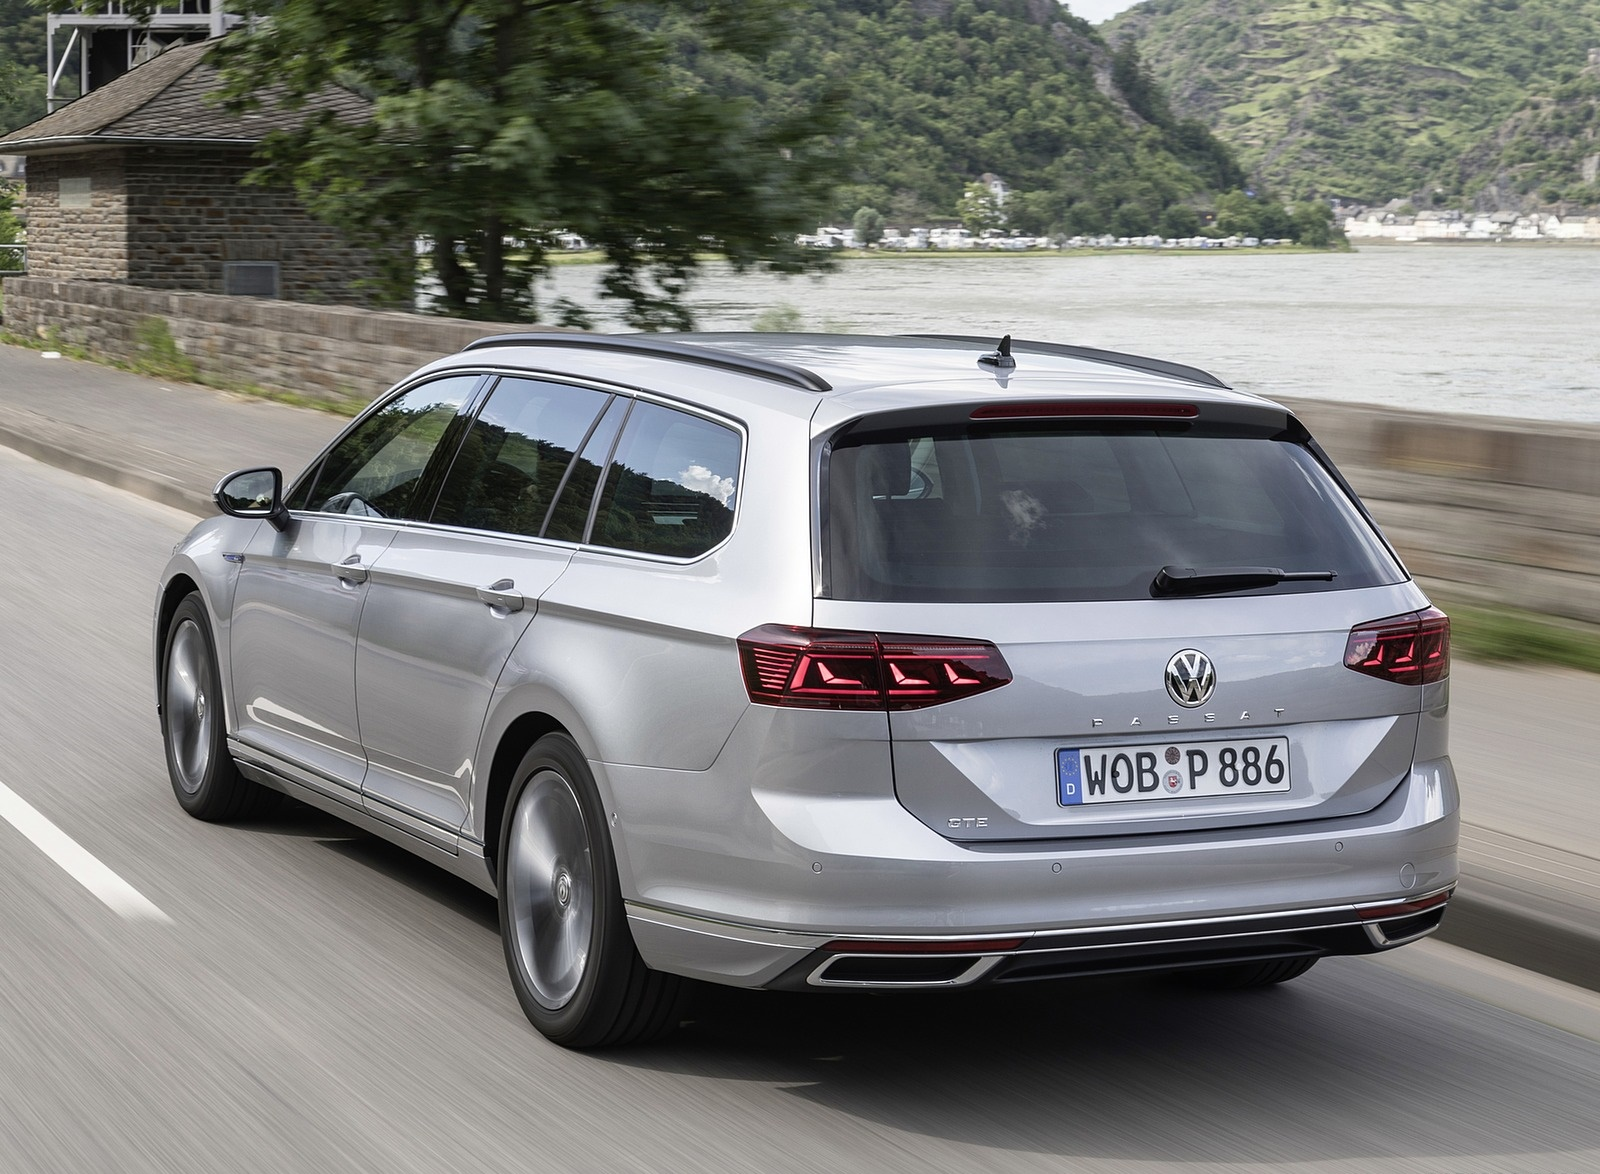 2020 Volkswagen Passat GTE Variant (Plug-In Hybrid EU-Spec) Rear Three-Quarter Wallpapers (5)